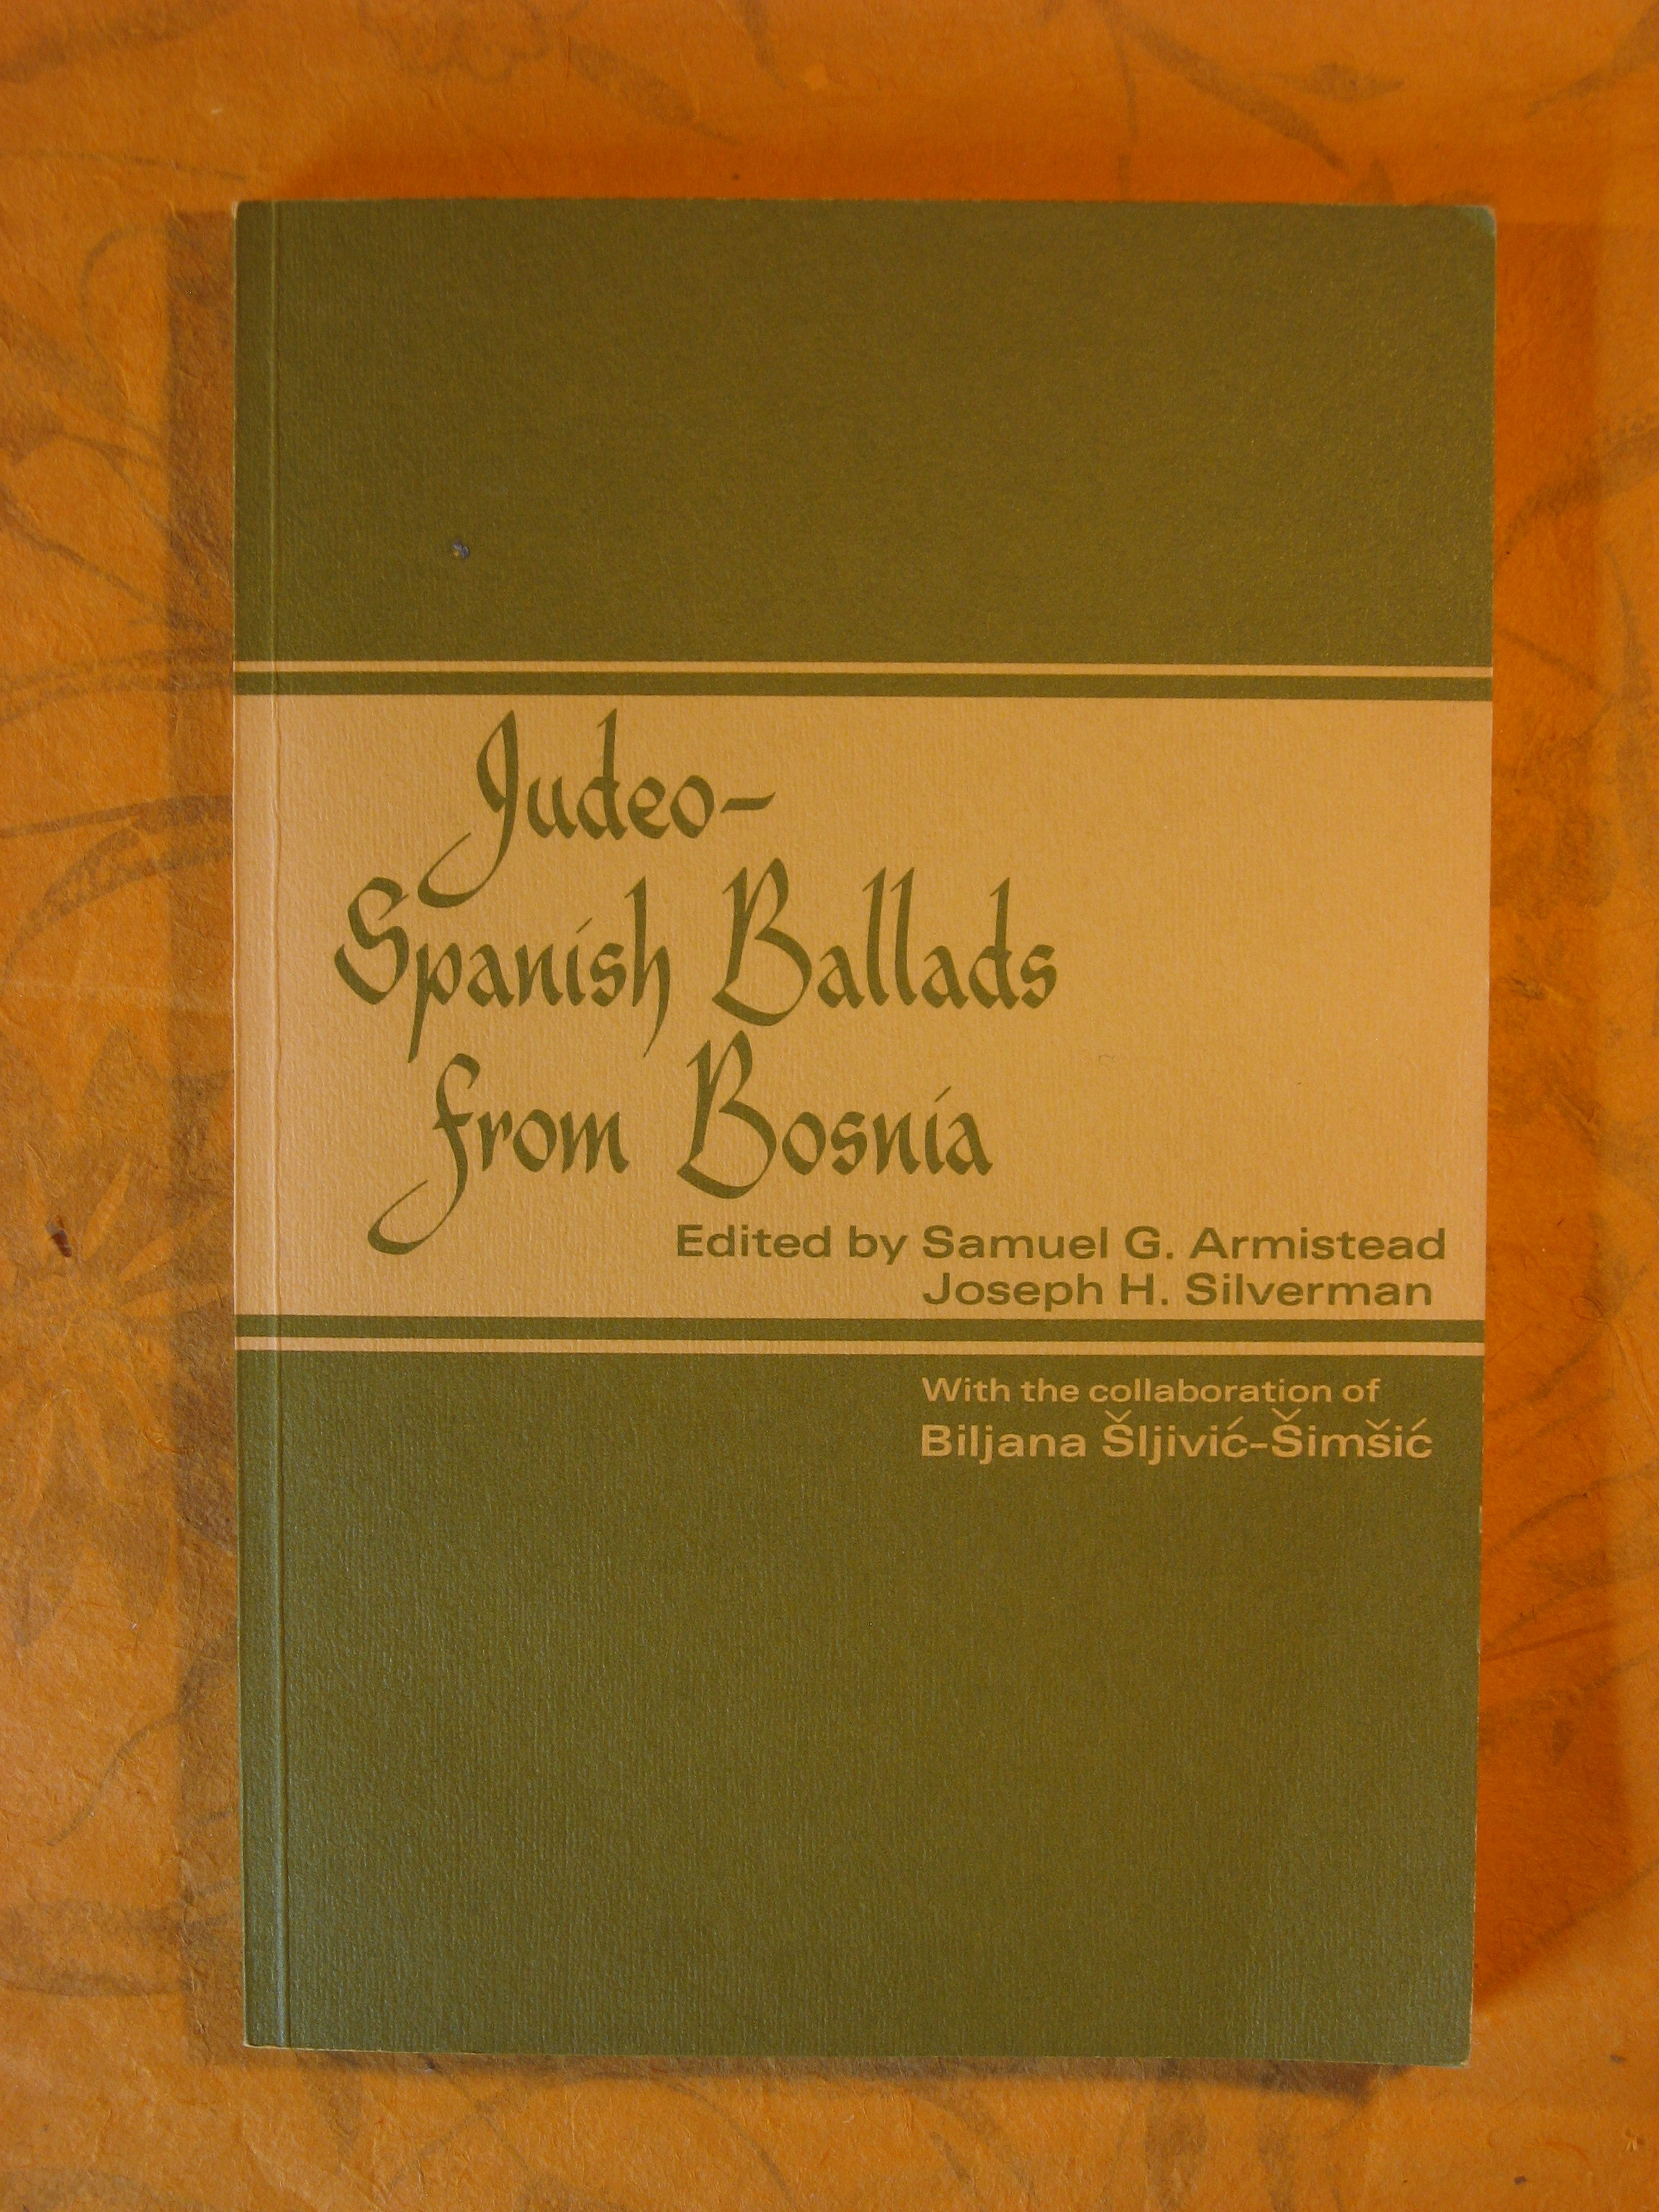 Image for Judeo-Spanish ballads from Bosnia (University of Pennsylvania publications in folklore and folklife, no. 4)